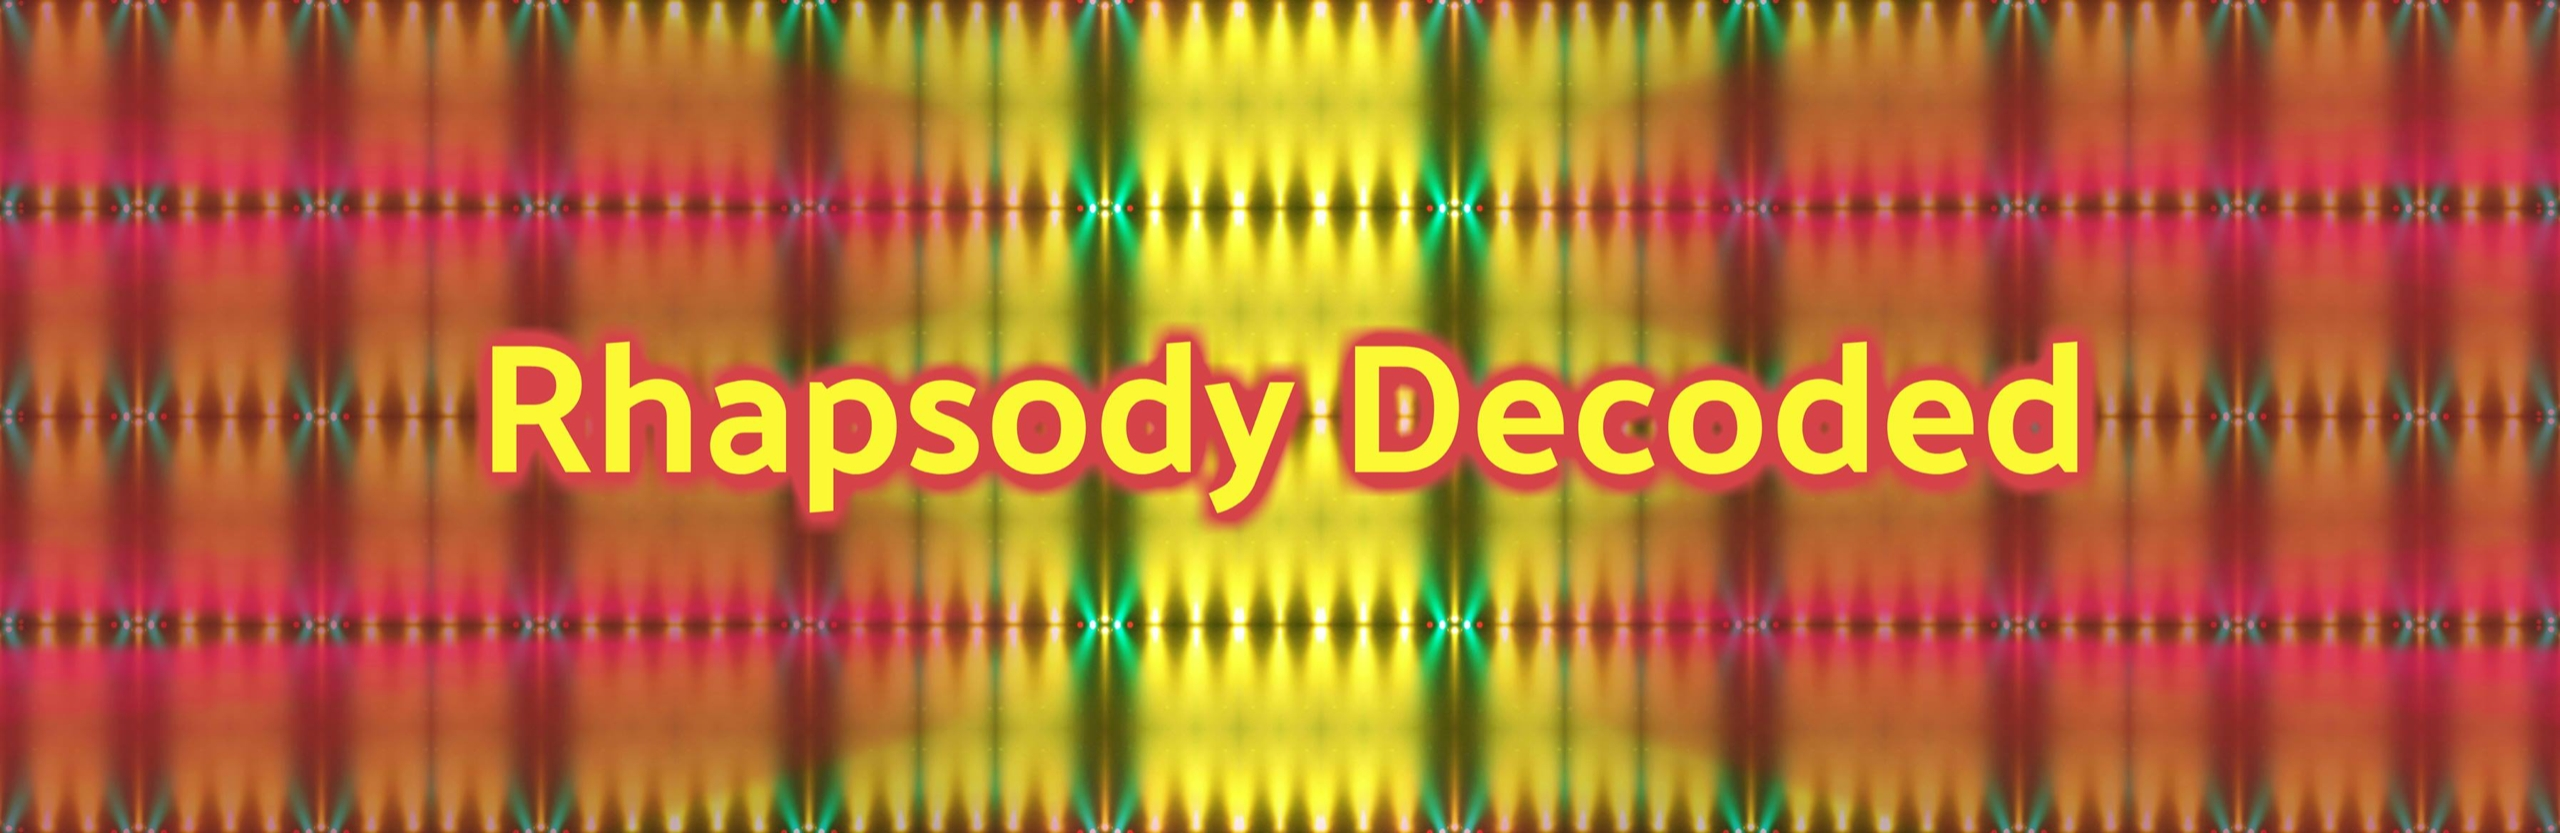 Rhapsody Decoded (@rhapsodydecoded) Cover Image